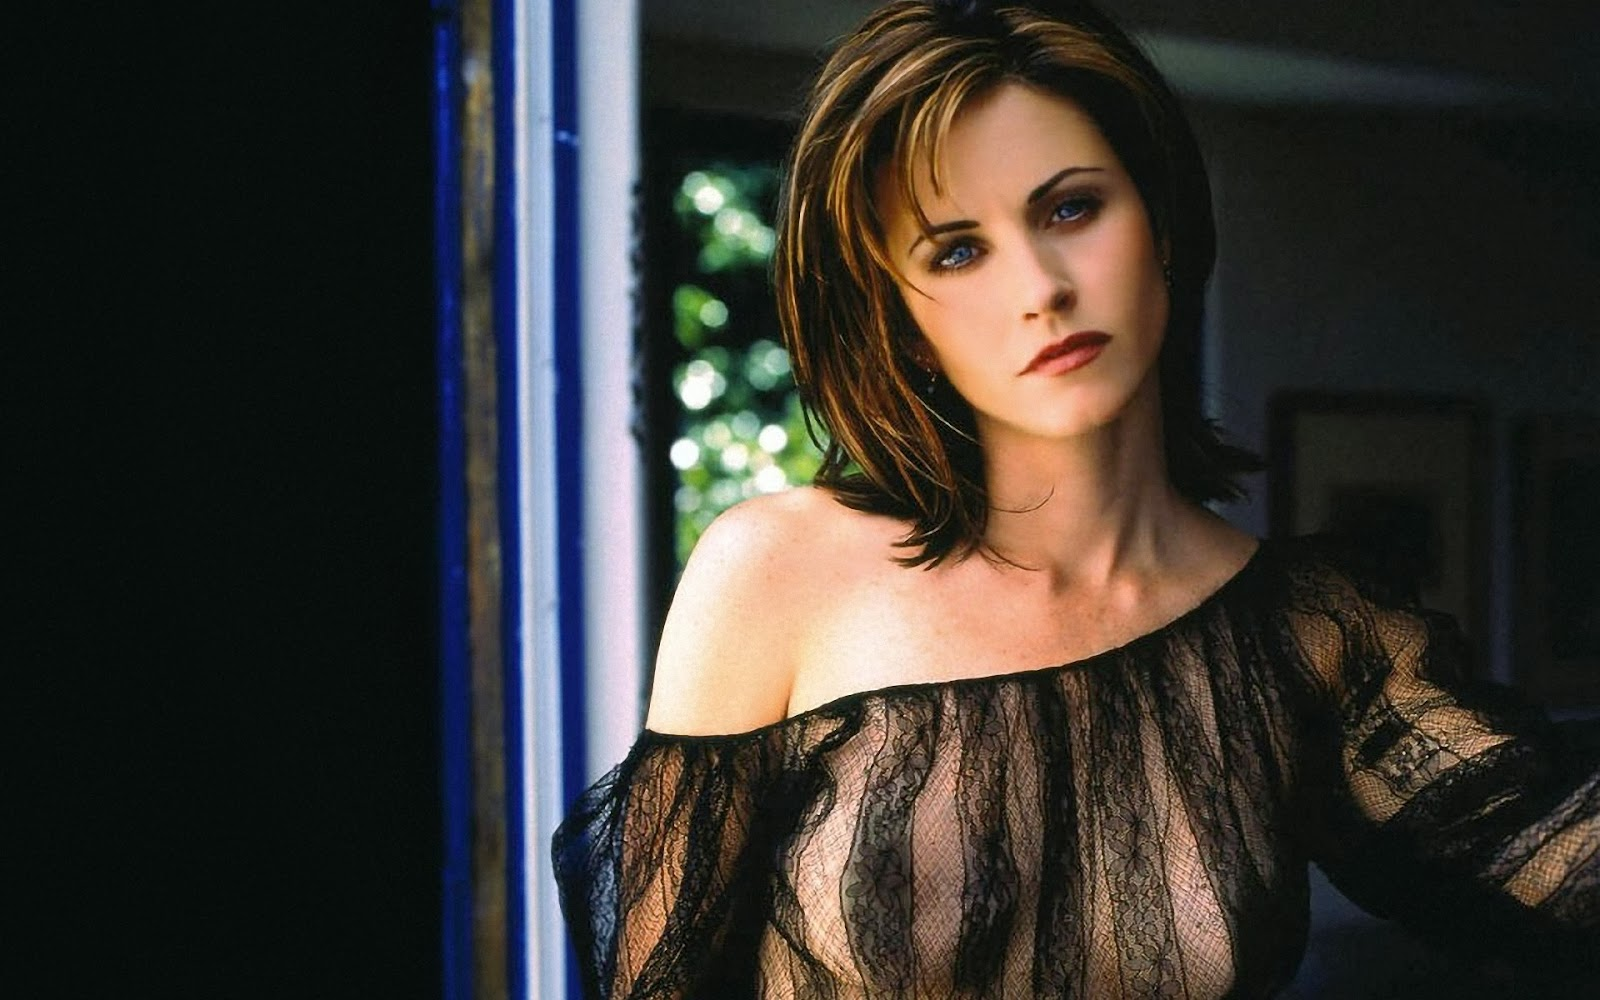 Courtney cox hot